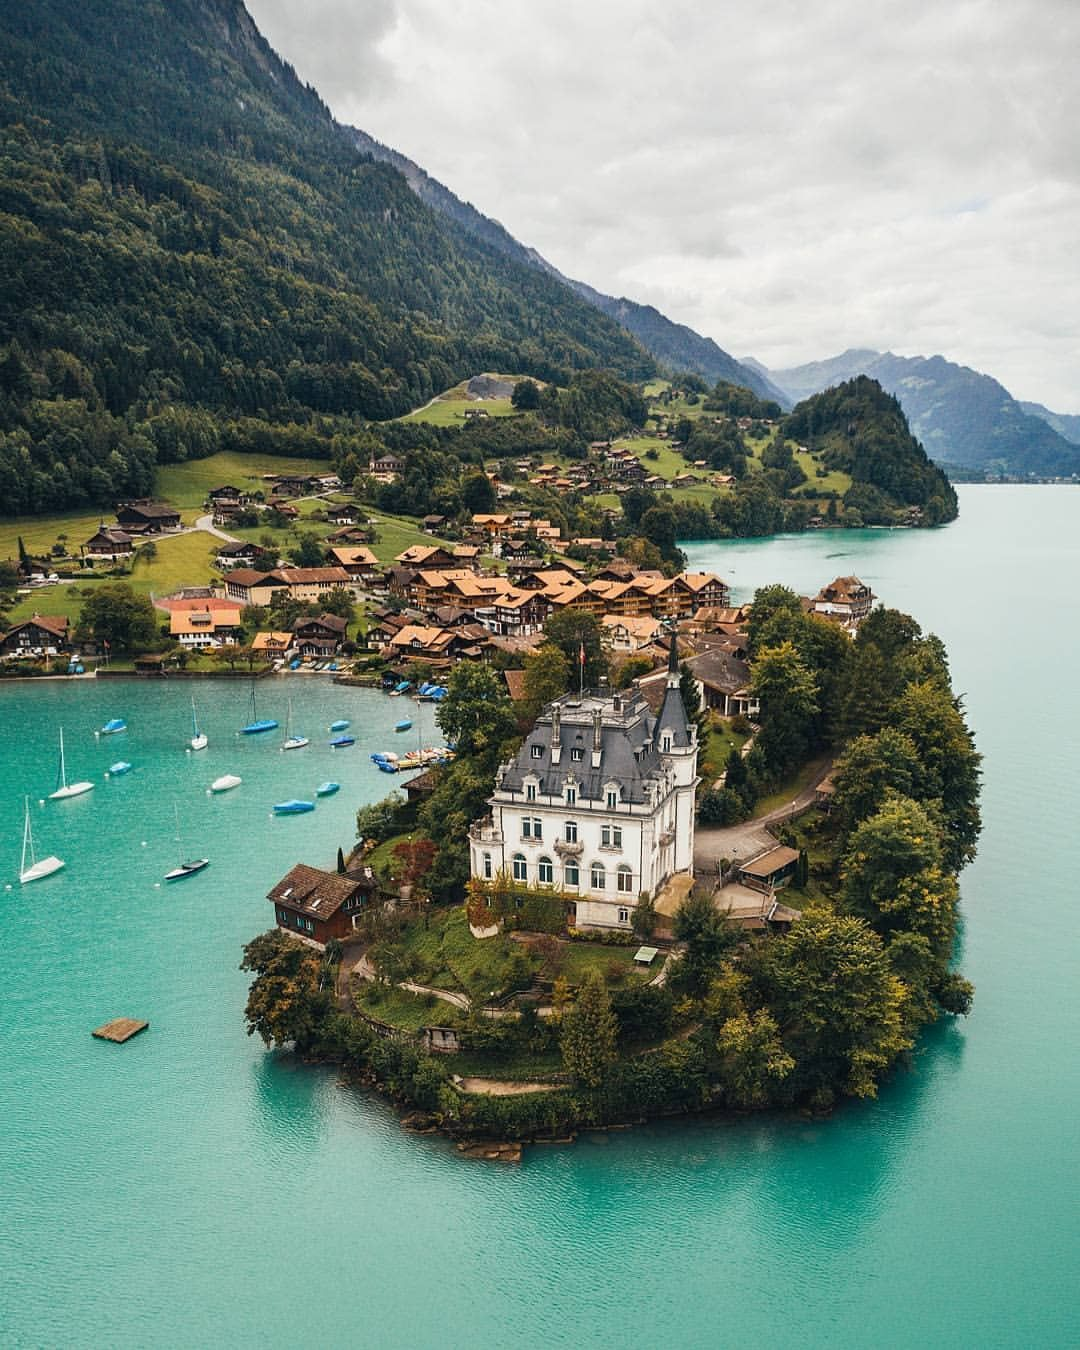 Schloss Seeburg, Iseltwald, Switzerland | switzerland in